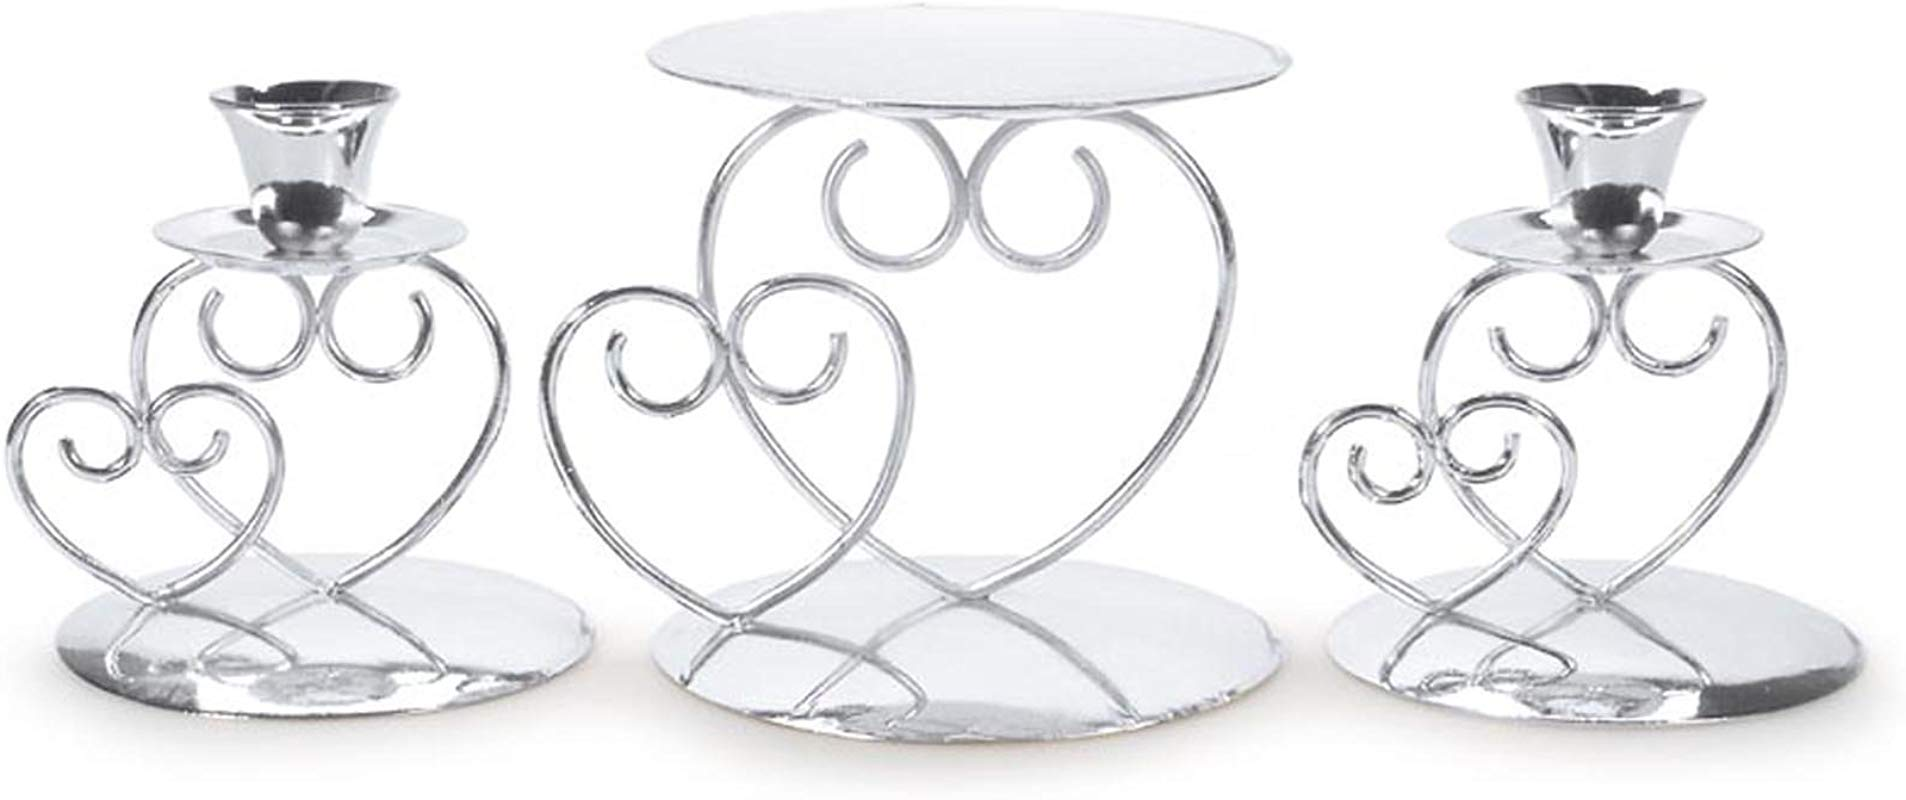 Darice F Victoria Lynn Unity 3 Piece Set Includes 2 Taper 1 Pillar Candle Holder Elegant Open Combined Hearts Design Perfect For Wedding Ceremony Silver